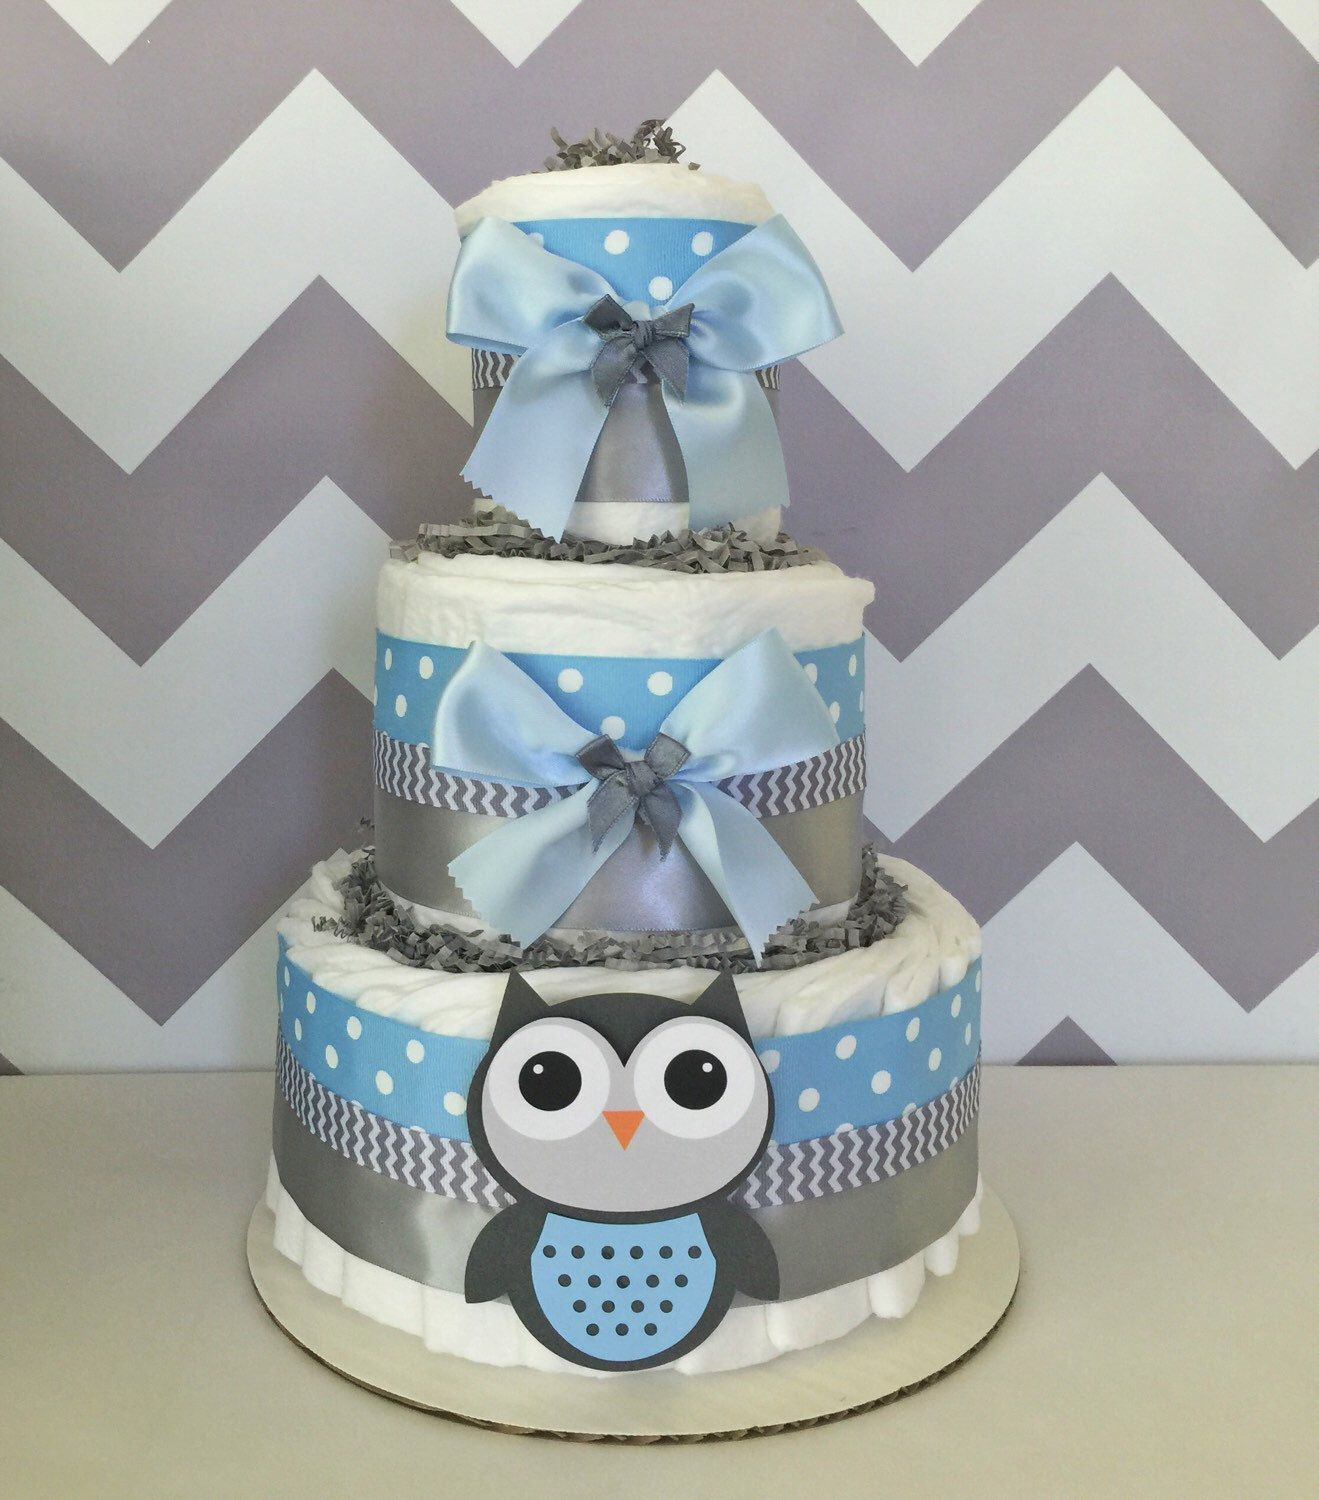 Boys Baby Shower Cake: Deluxe Owl Diaper Cake In Blue And Gray, Owl Baby Shower